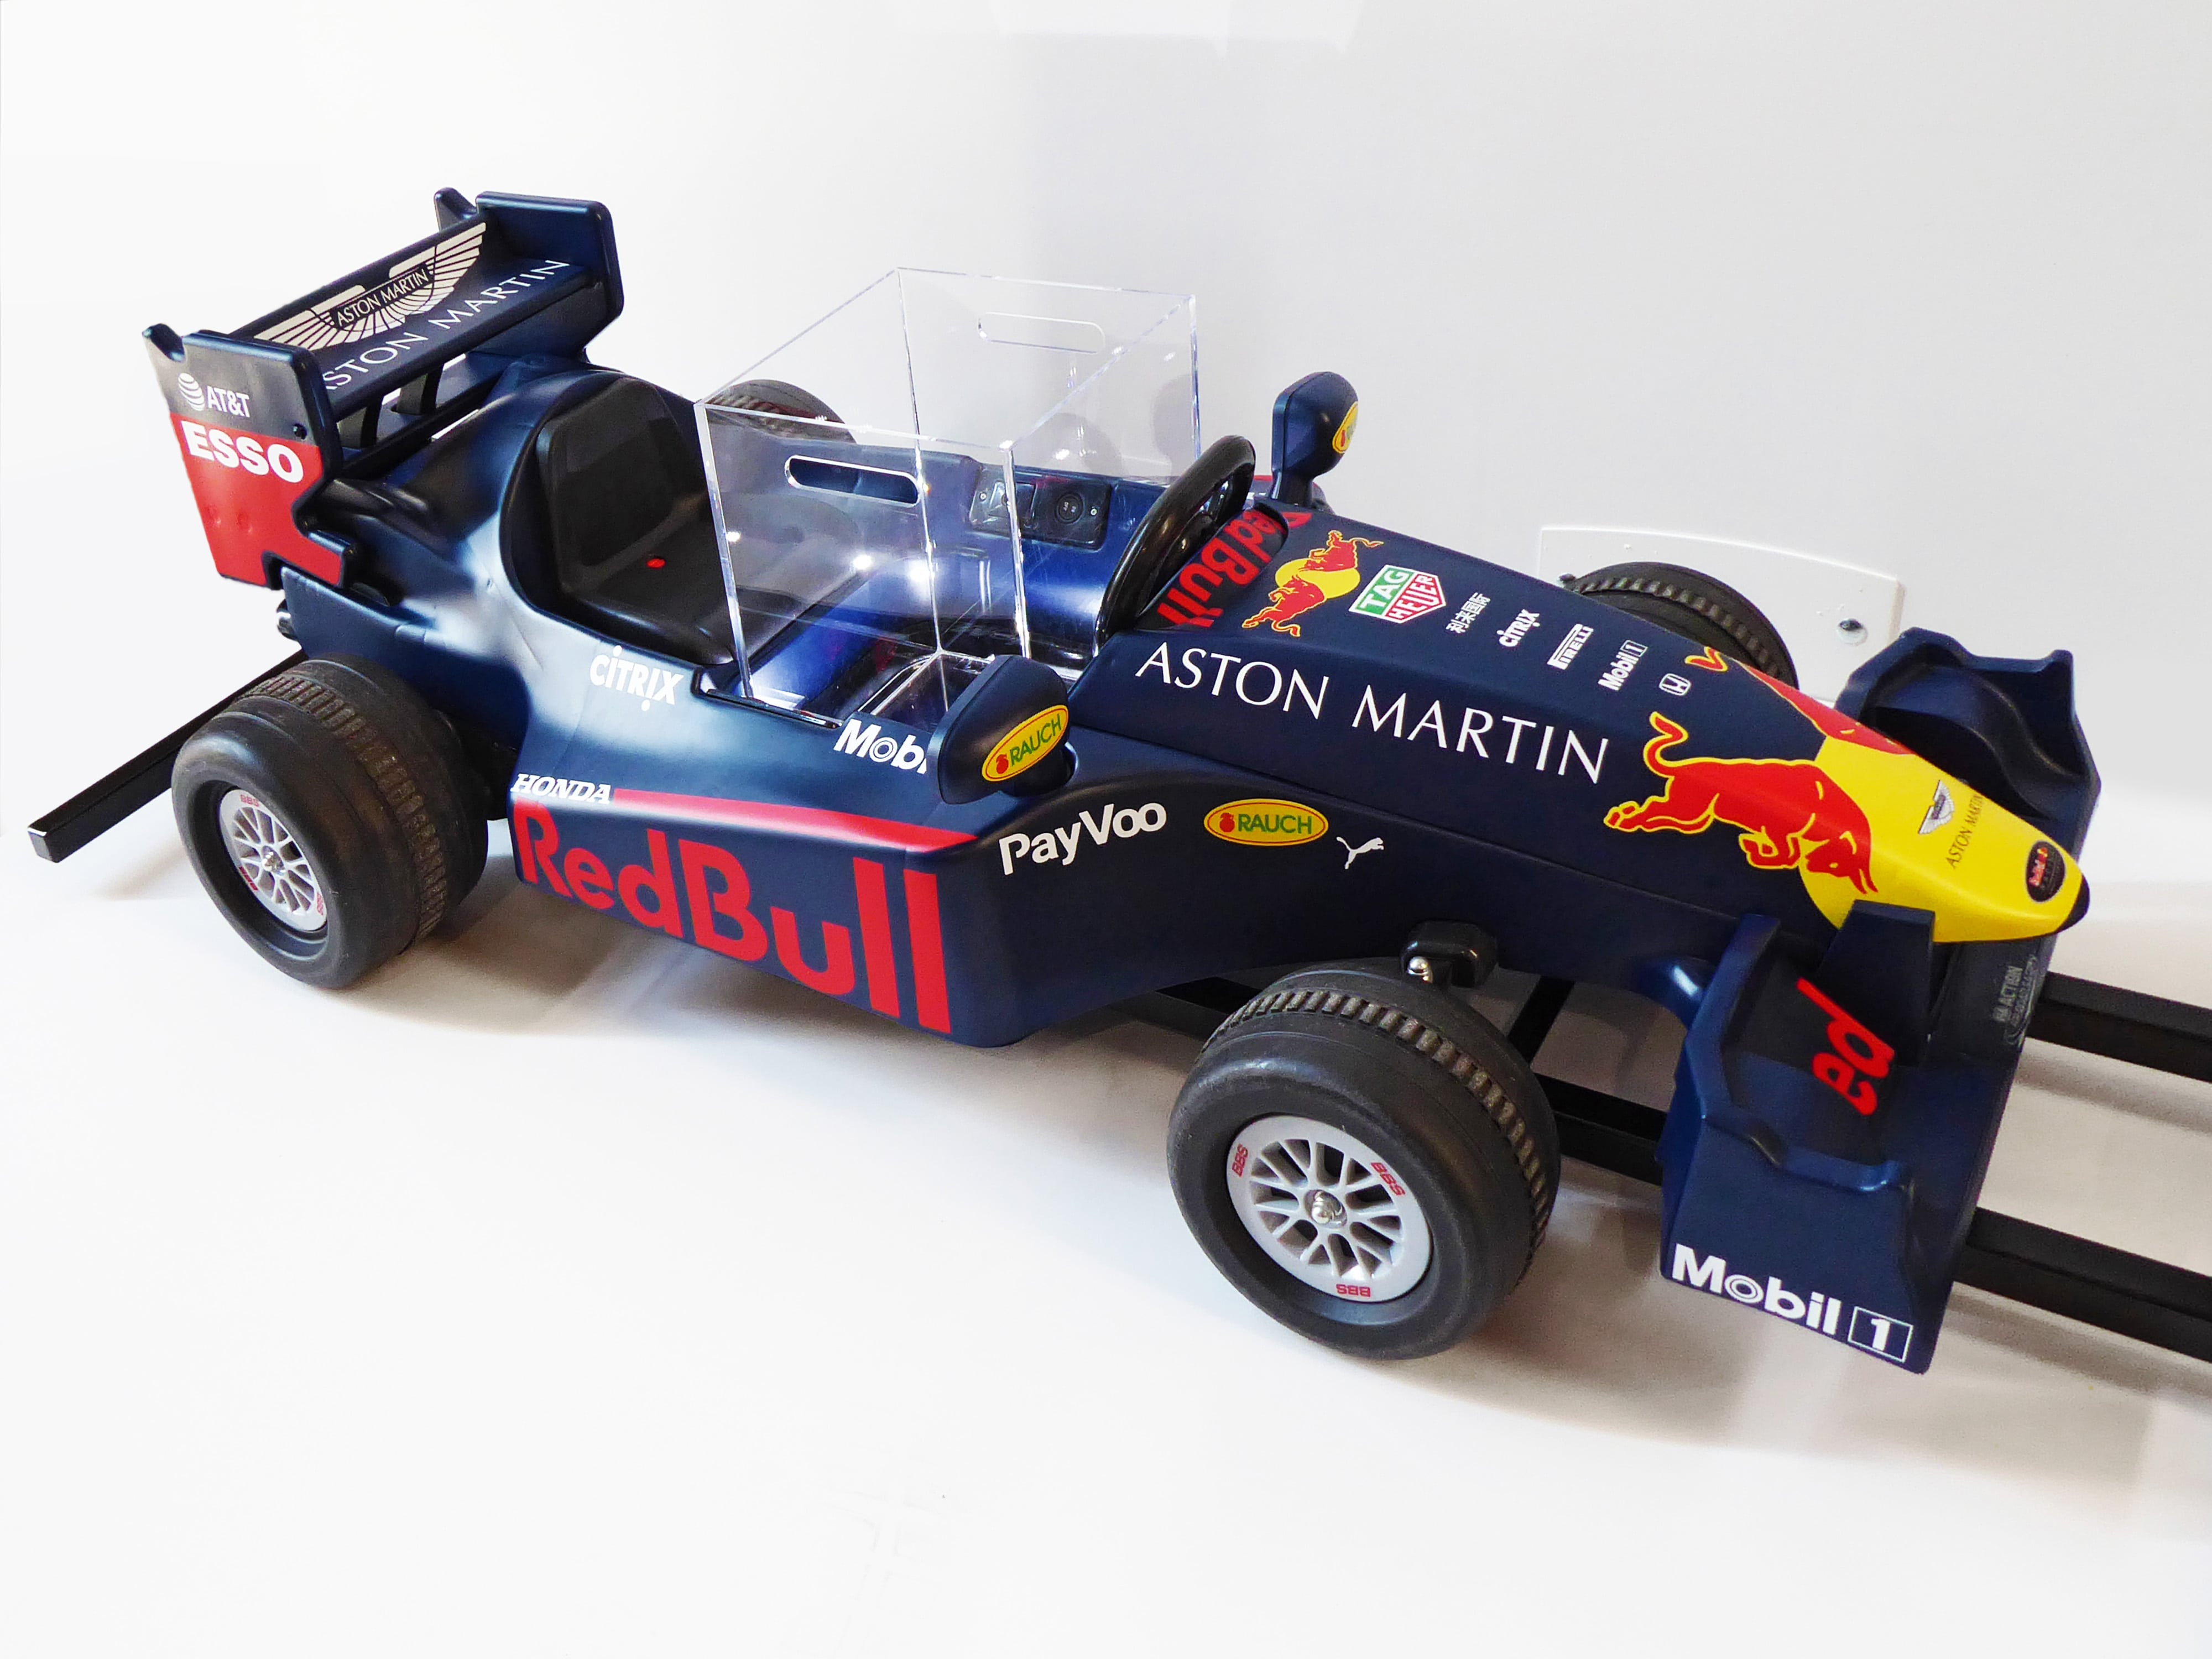 Red Bull - F1 serving tool